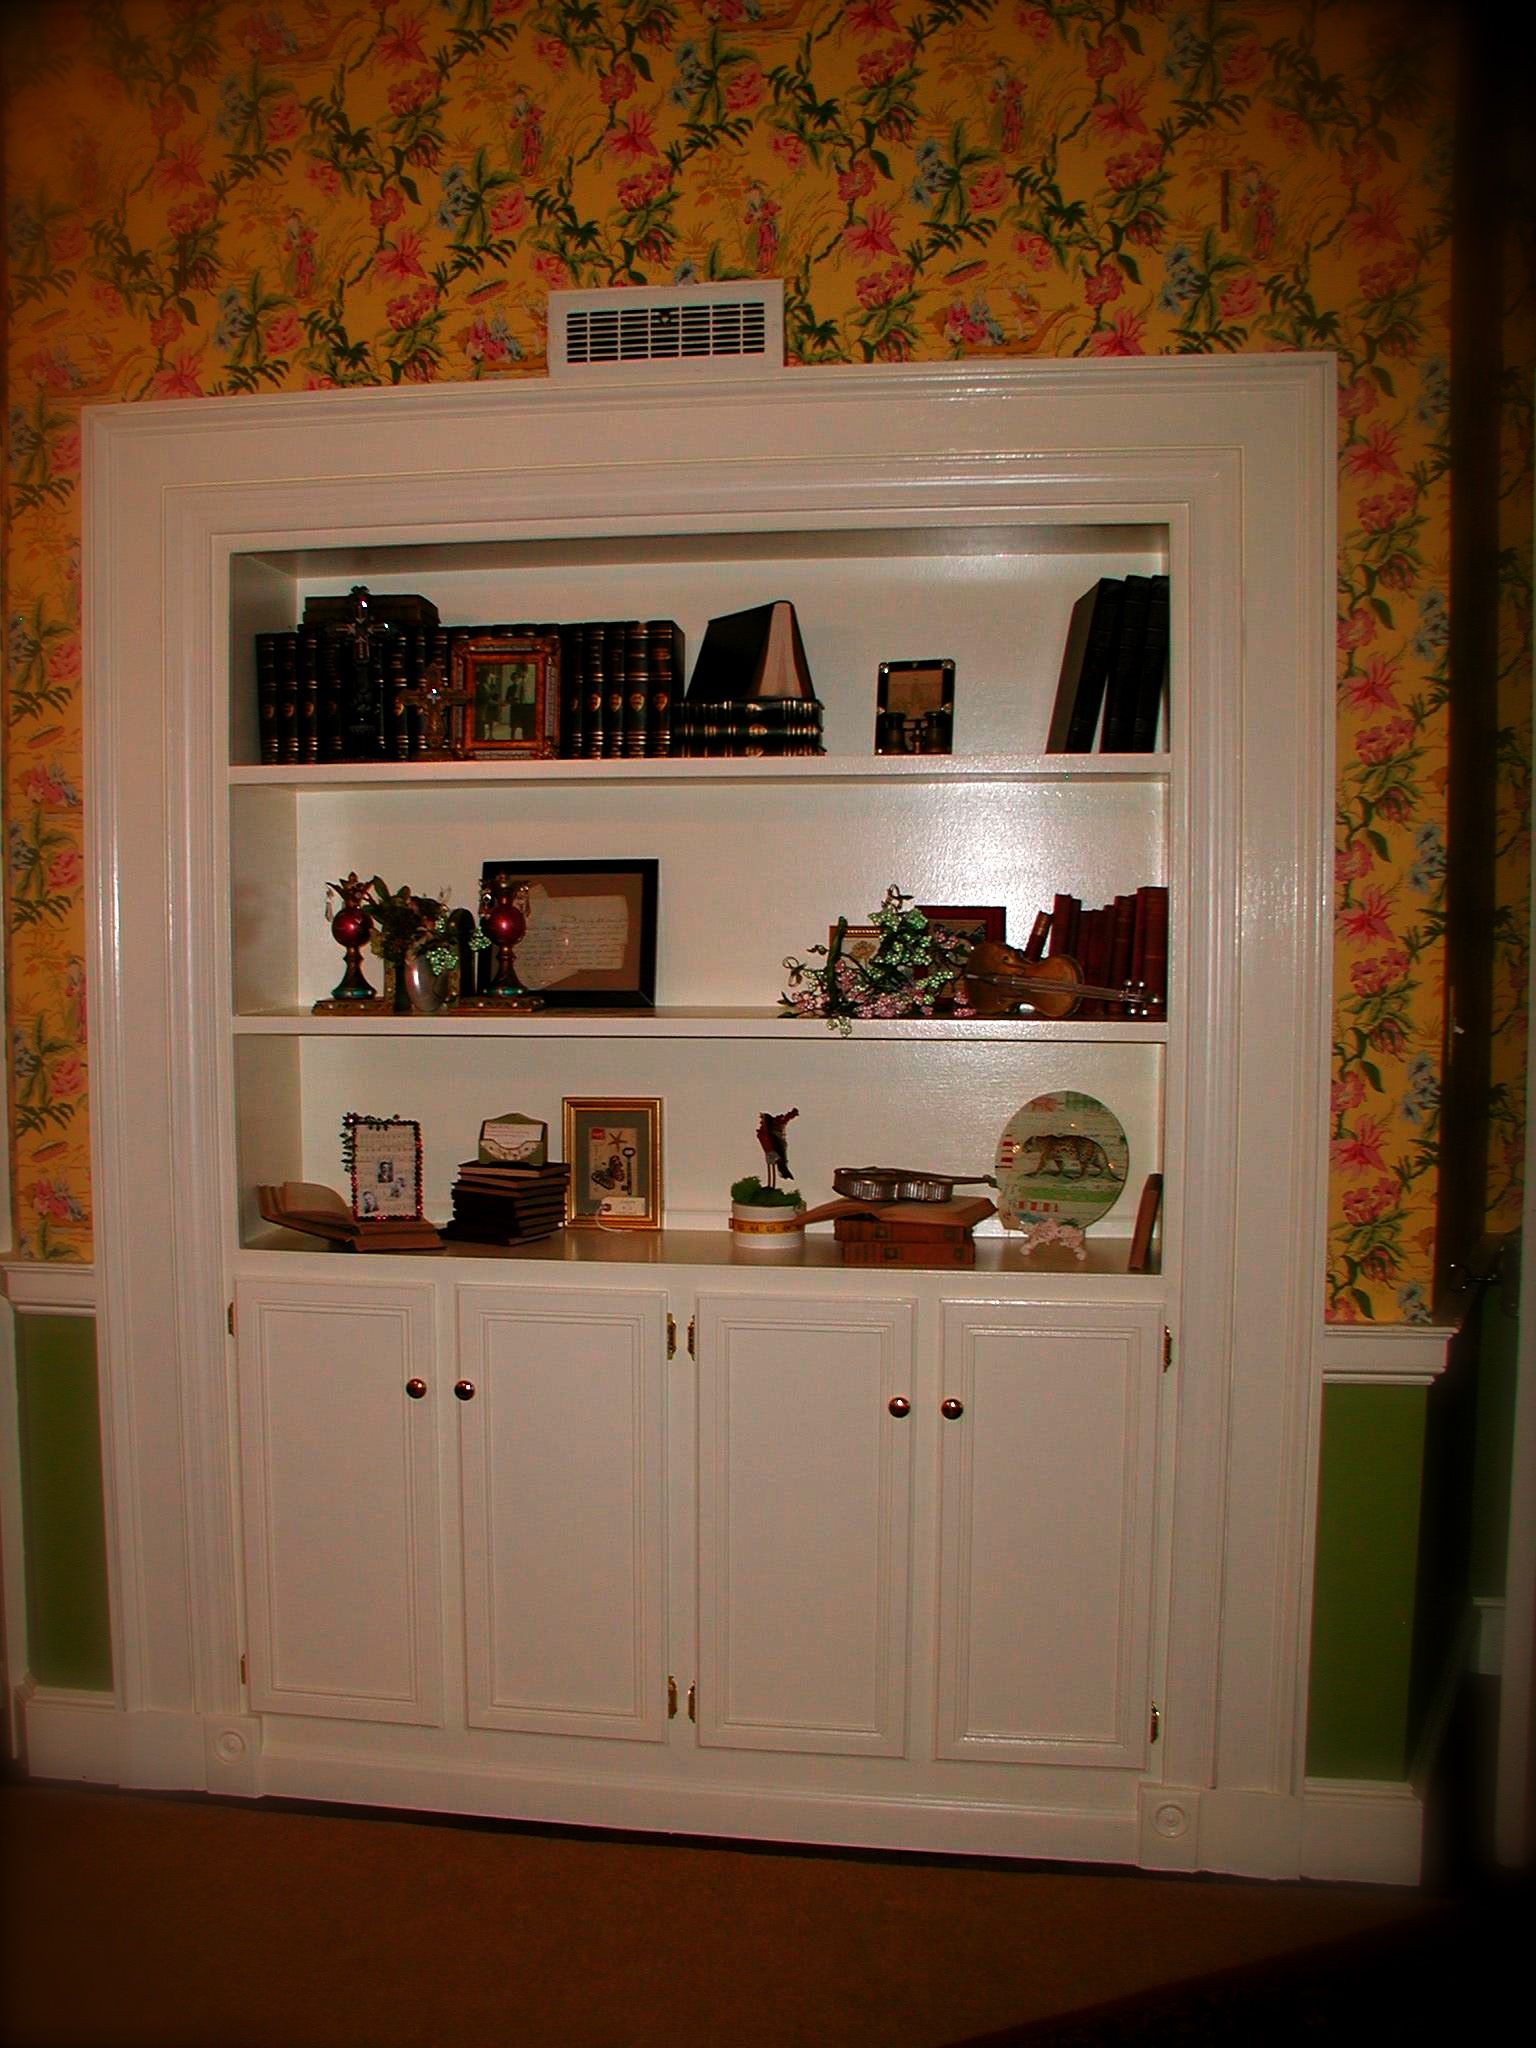 We Had A Bookcase And Cabinet Built Into The Closet